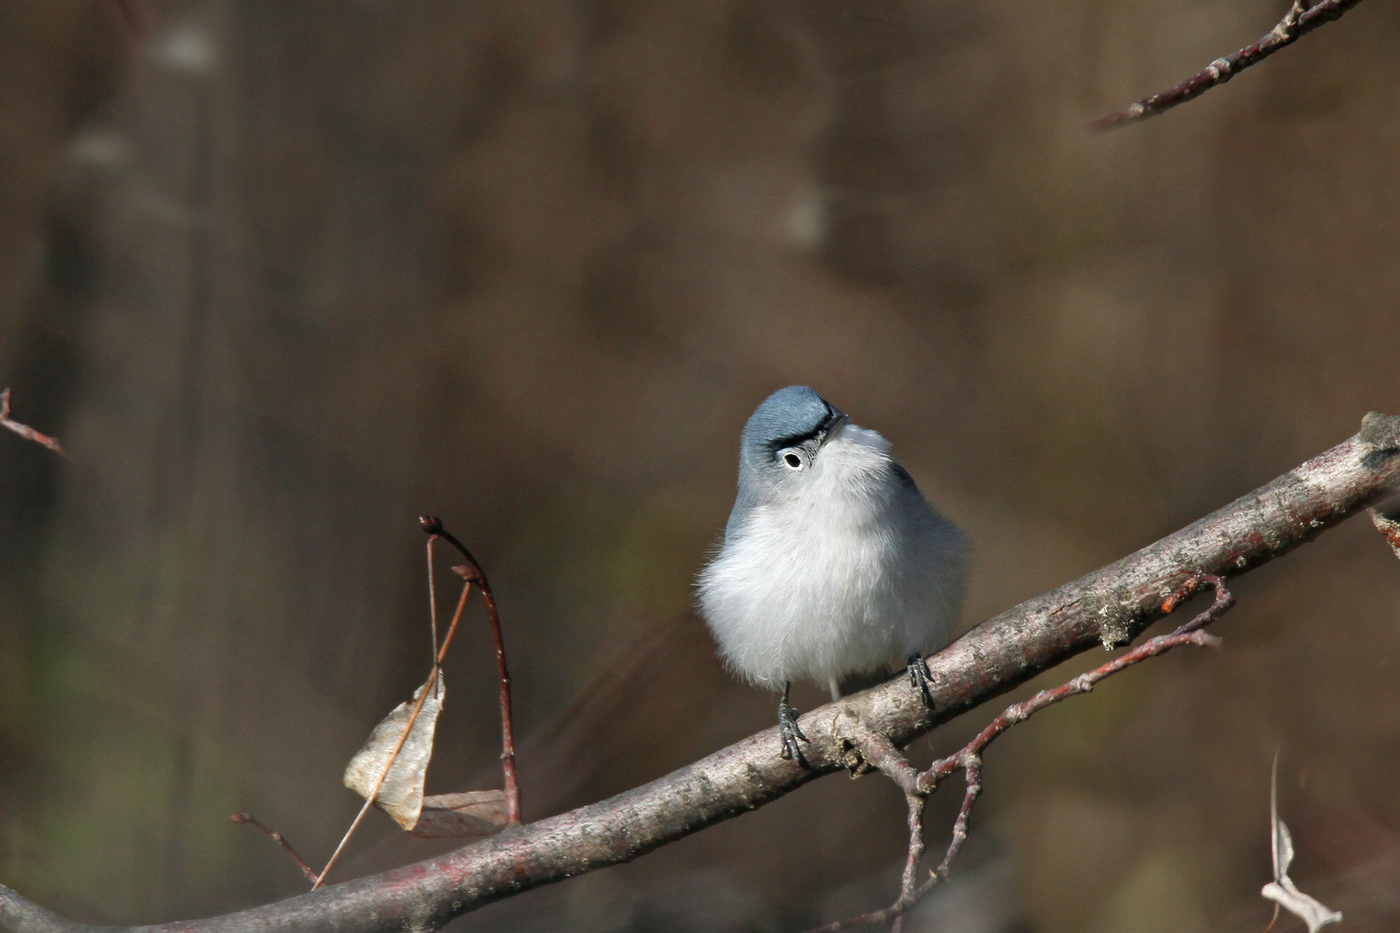 Gnatcatcher #2